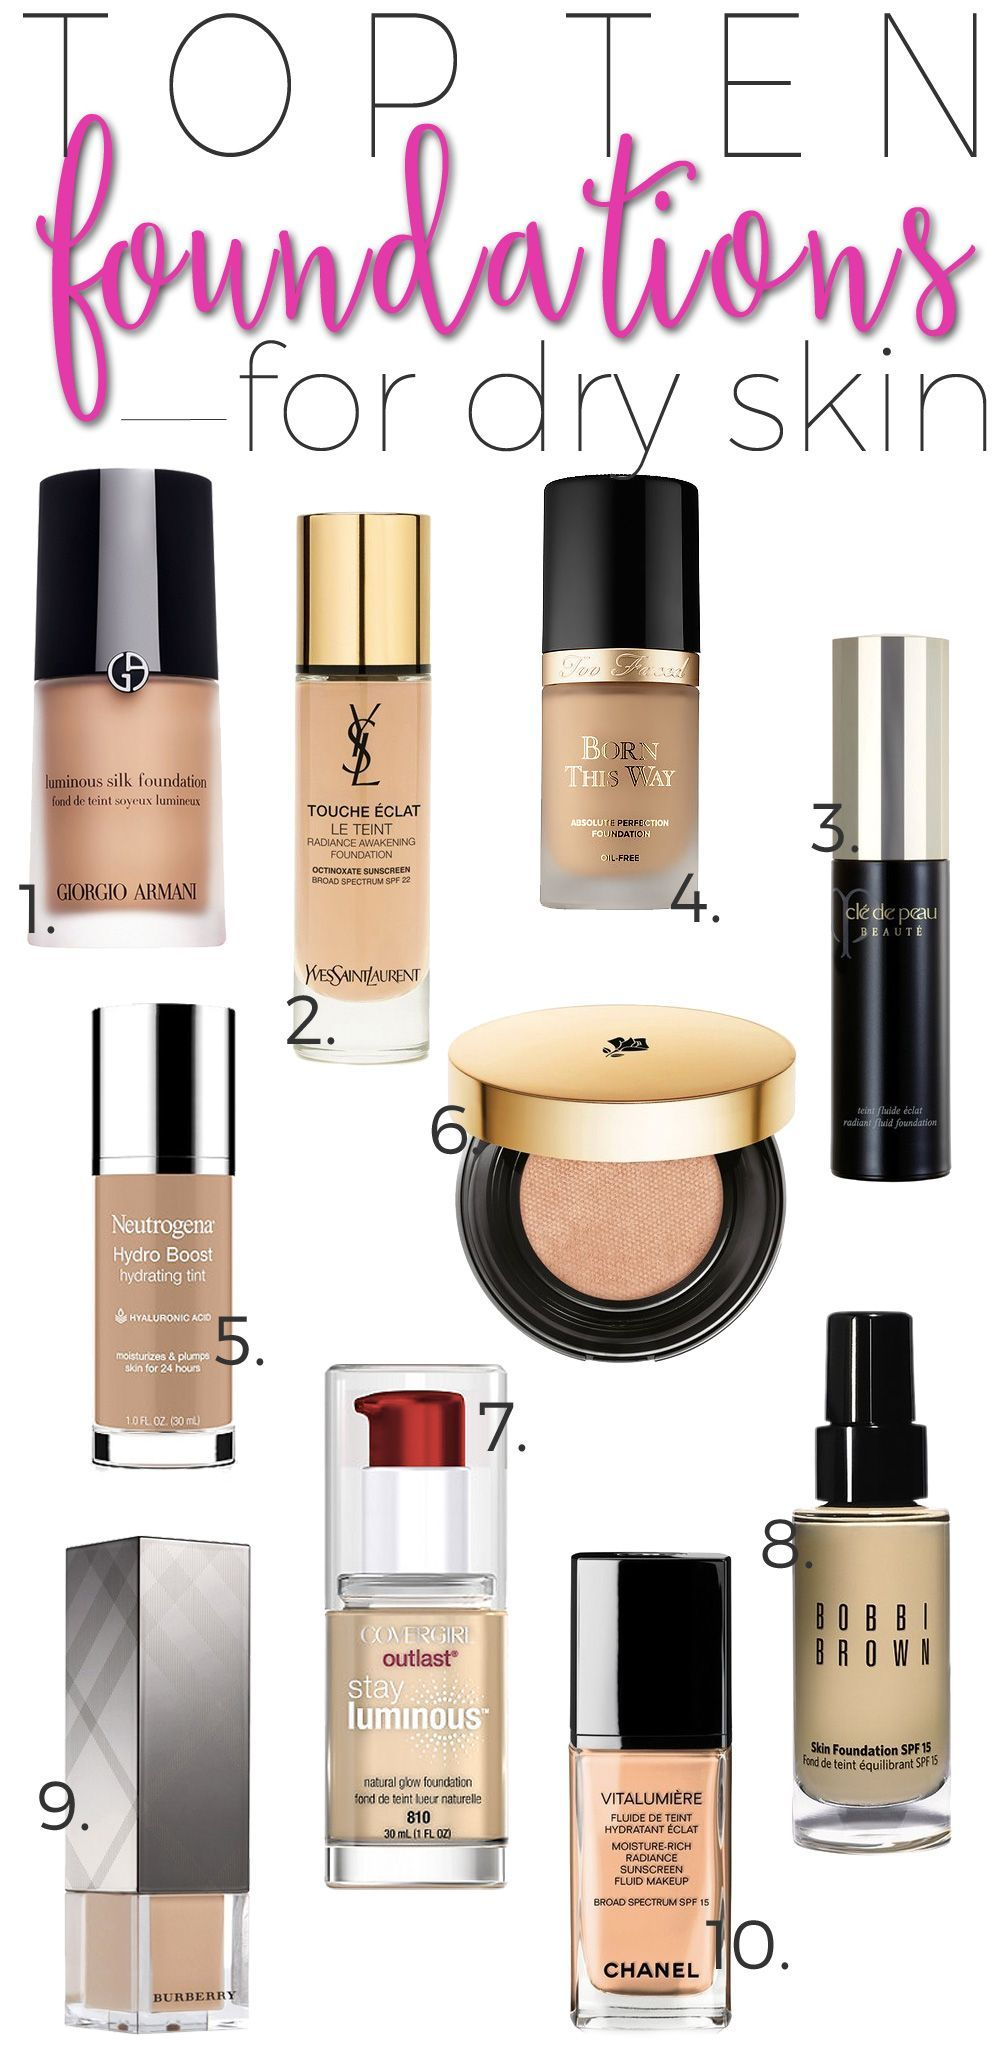 Top 10 Foundations for Dry Skin. Best makeup products